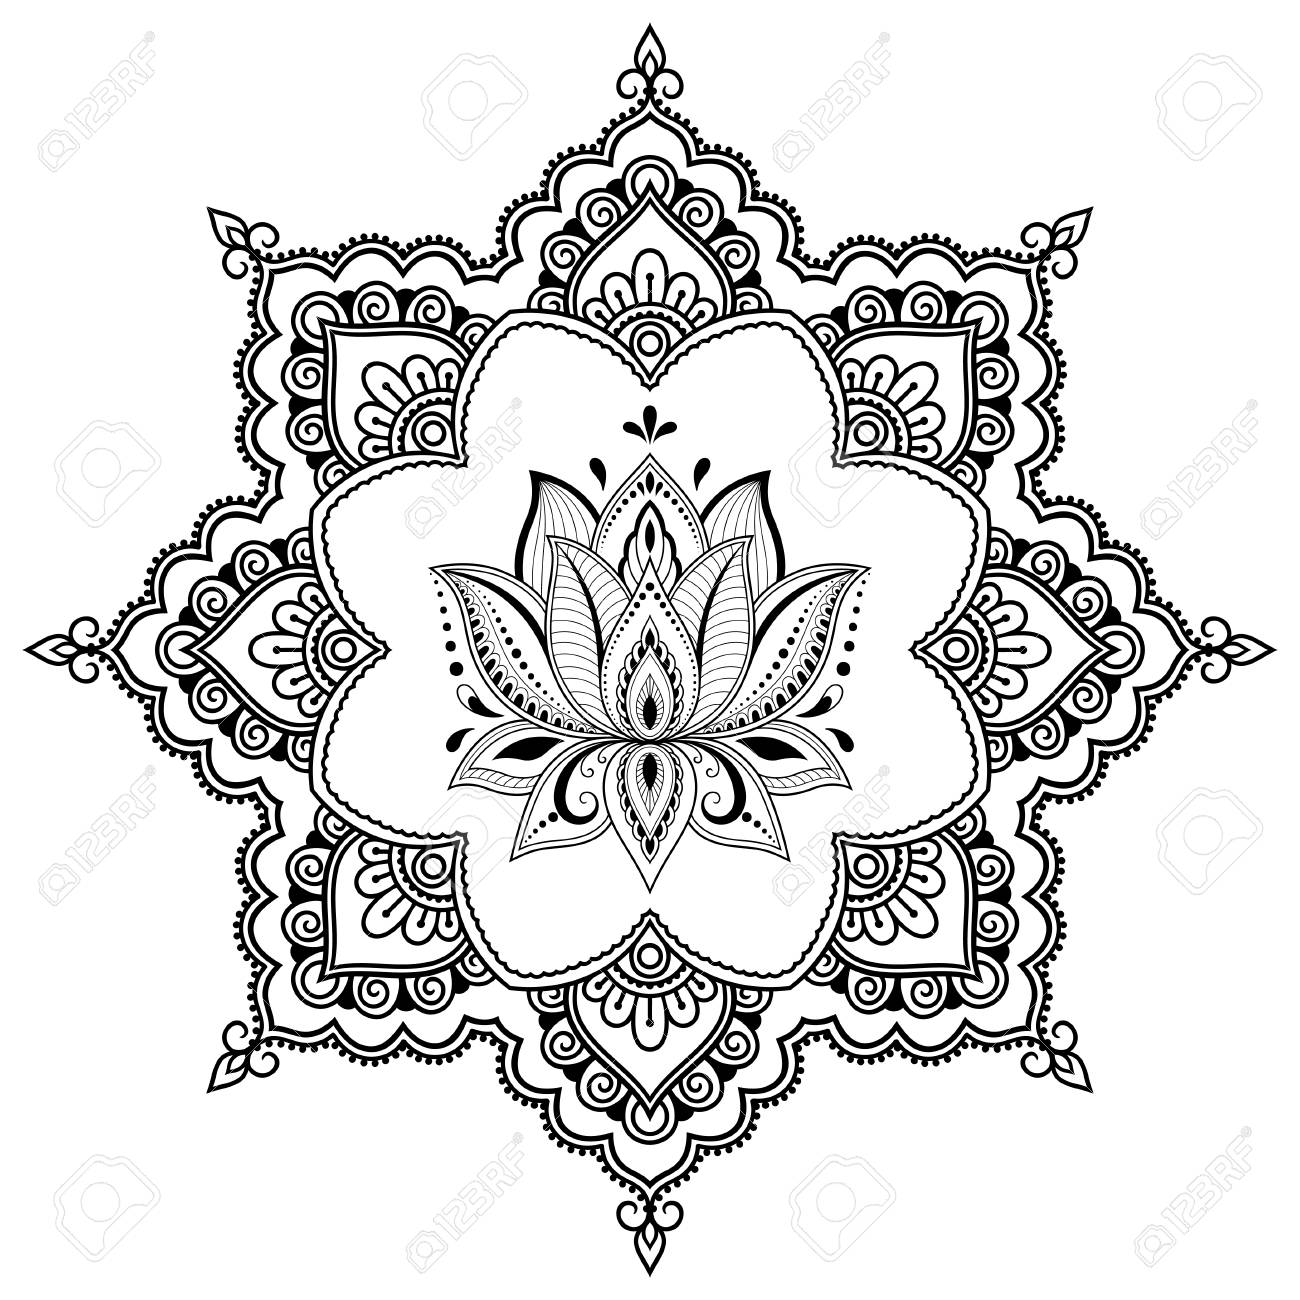 Circular pattern in form of mandala with Lotus flower for Henna, Mehndi, tattoo, decoration. Decorative ornament in ethnic oriental style. Coloring book page. - 112342375